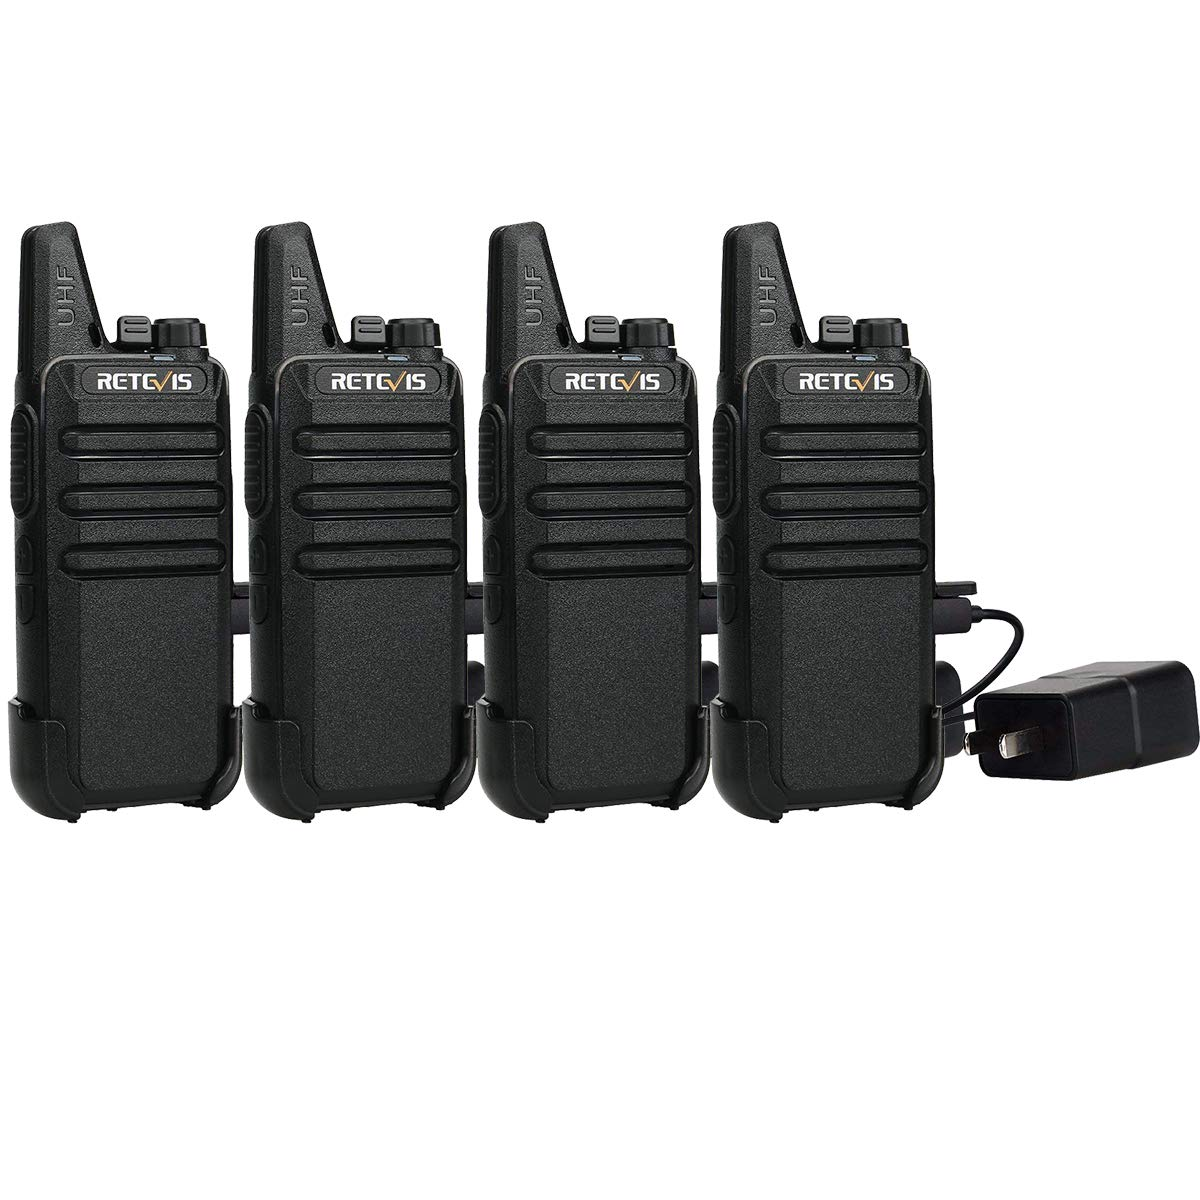 Retevis RT22 Two Way Radio Rechargeable Walkie Talkies 16 CH VOX FRS Radio Small with Emergency Alarm Chanel Lock(4 Pack)